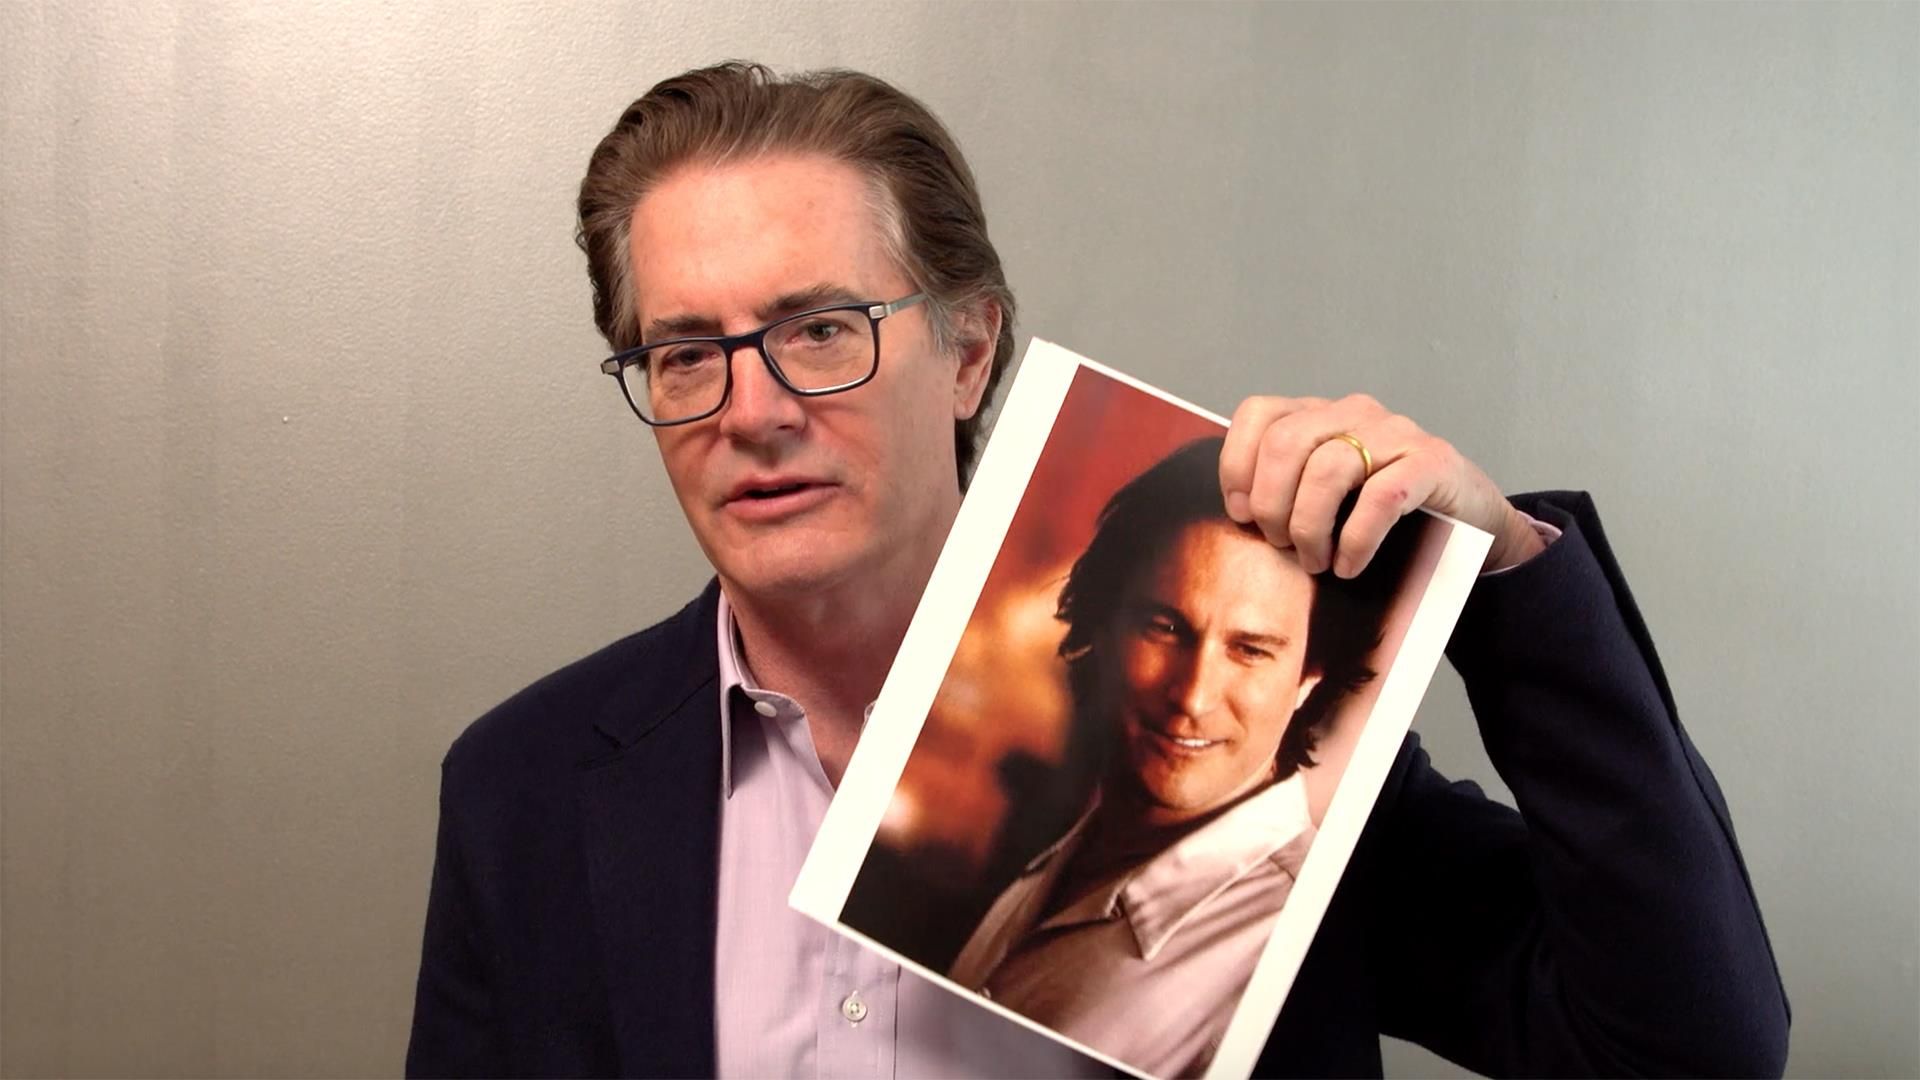 Kyle maclachlan sex and the city images 408